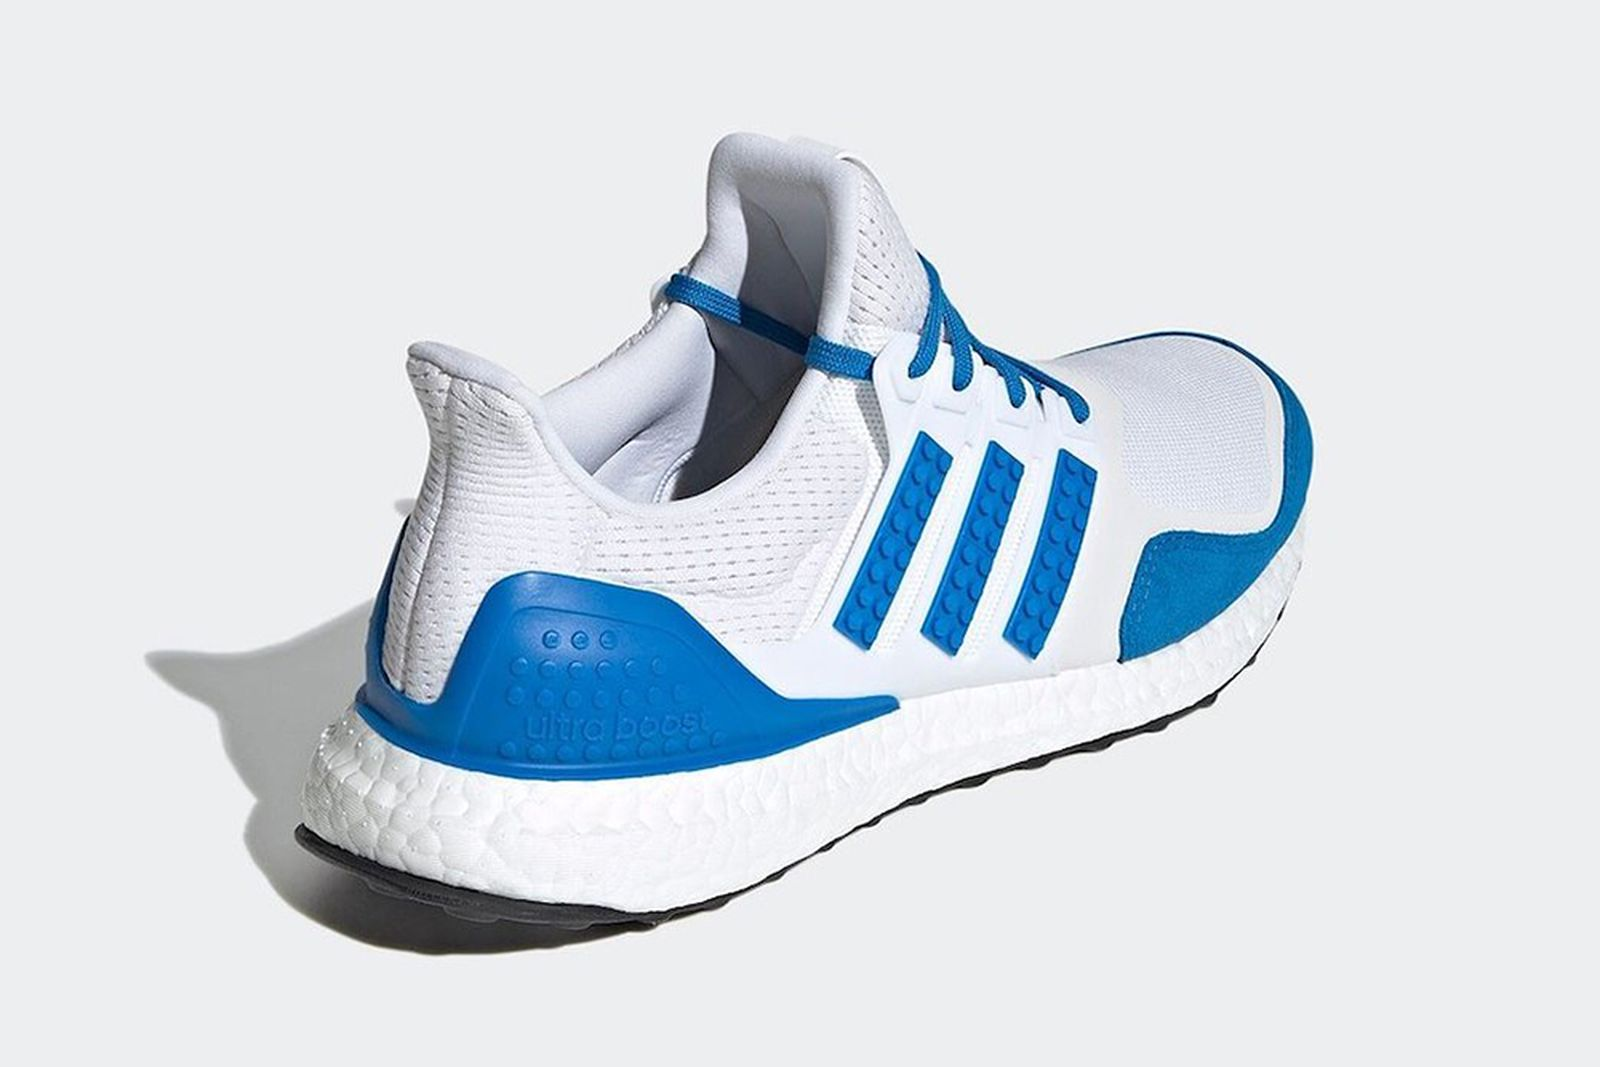 lego-adidas-ultraboost-color-pack-release-date-price-07